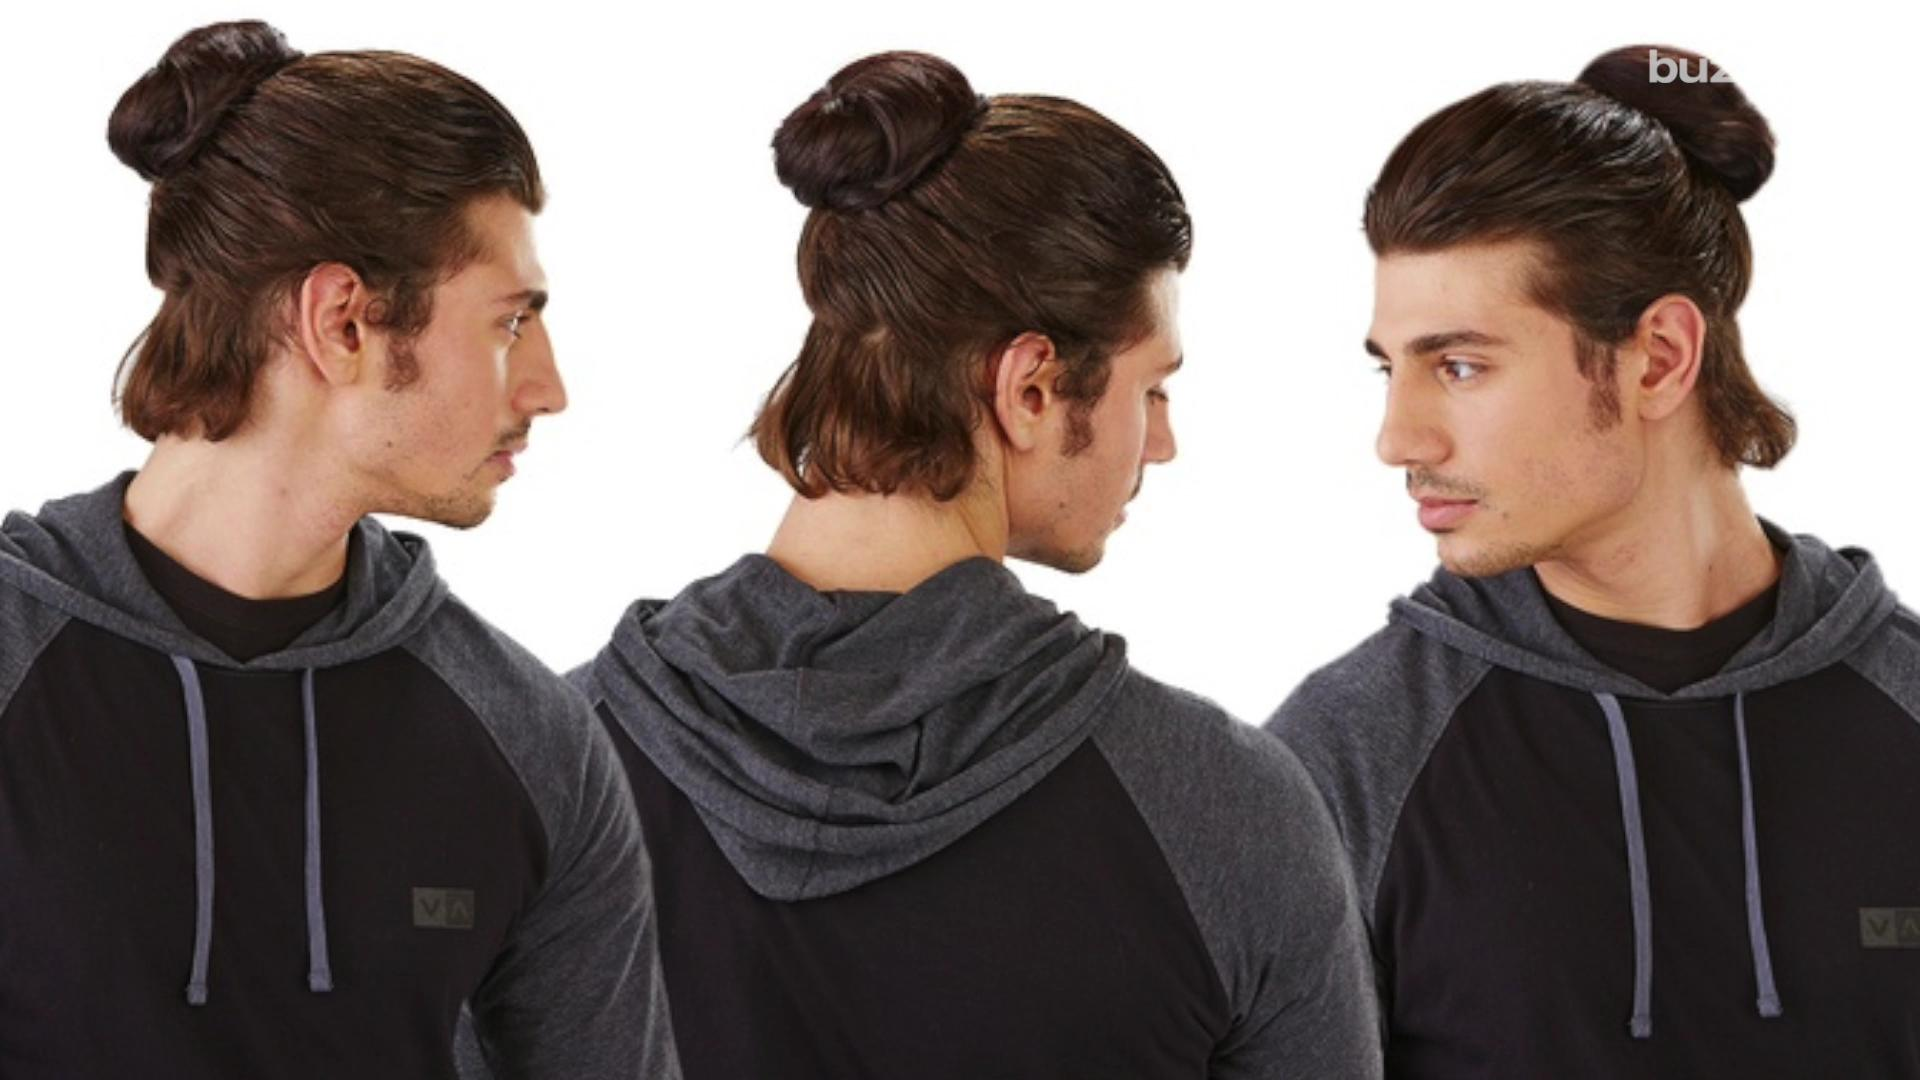 Clip on man buns are officially a thing